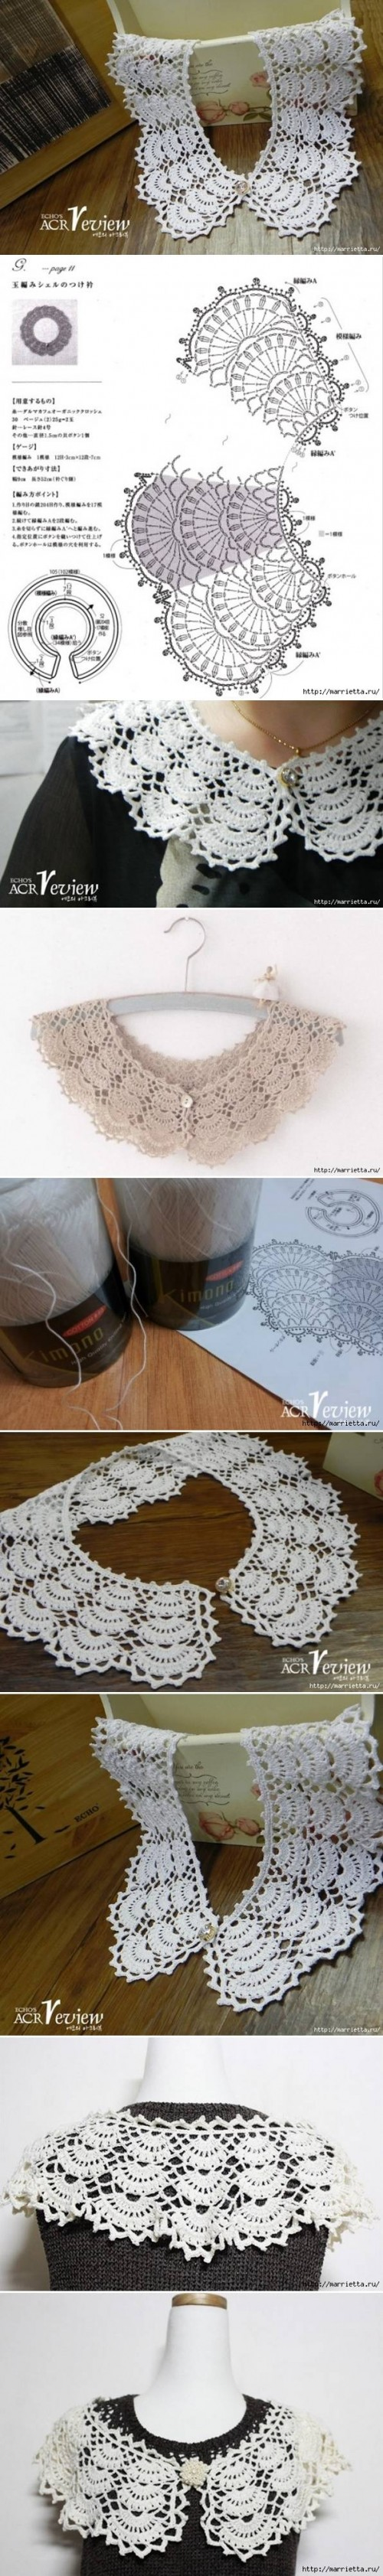 How to make Open Work Crochet Collar step by step DIY tutorial instructions